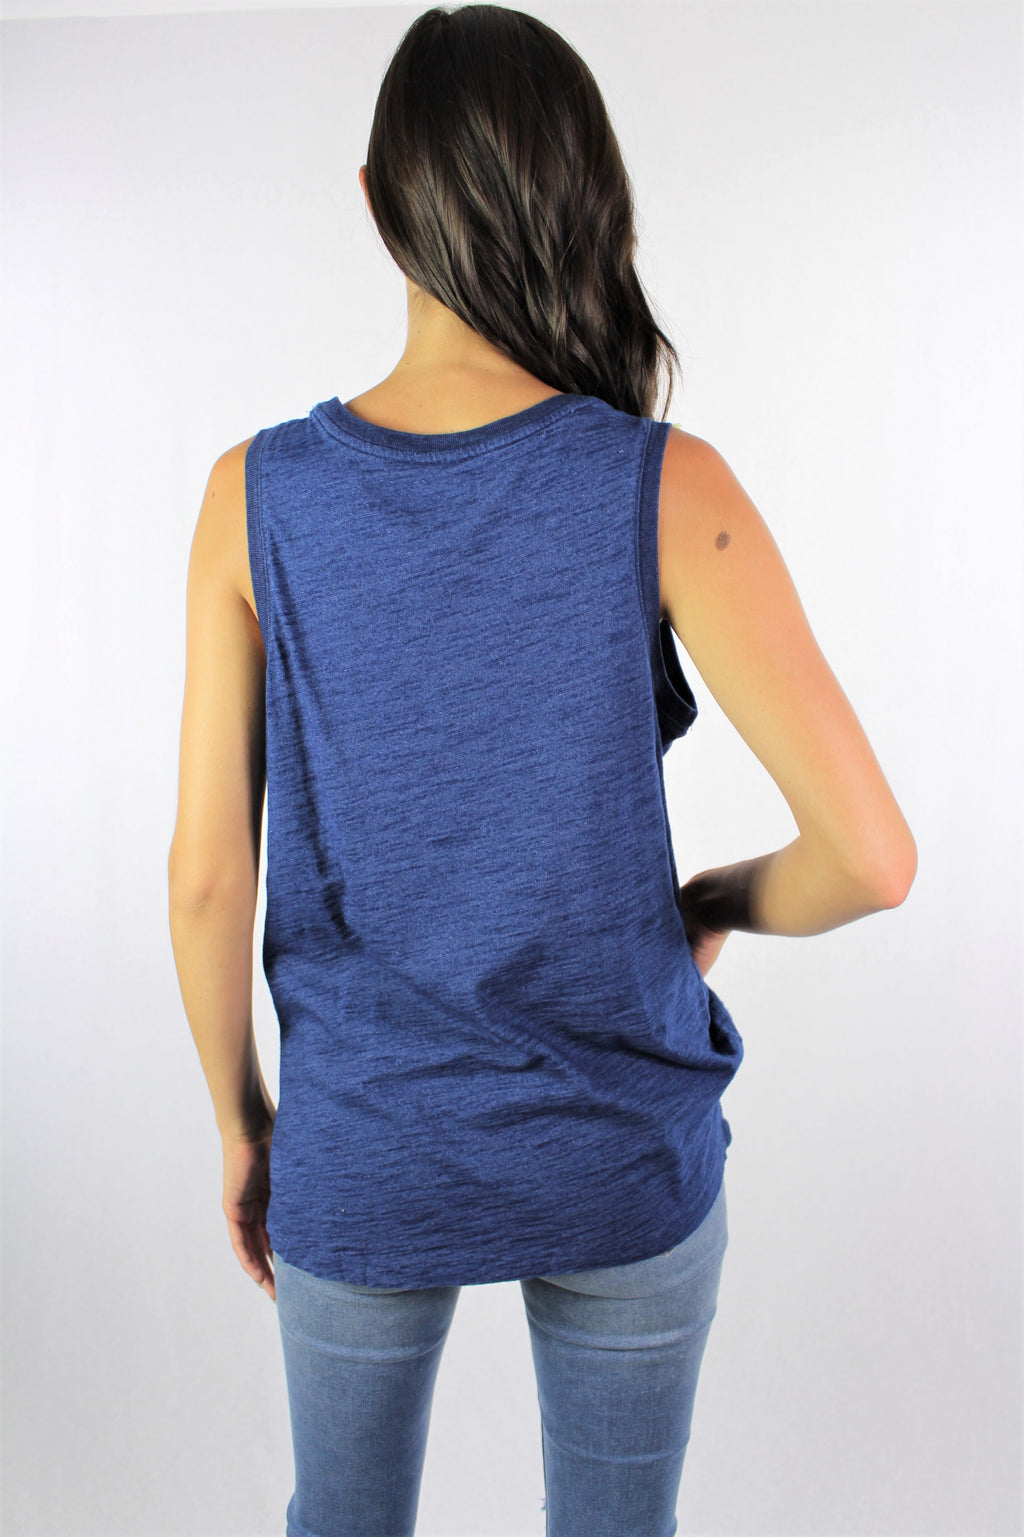 Women's Tank Top with Front Pocket